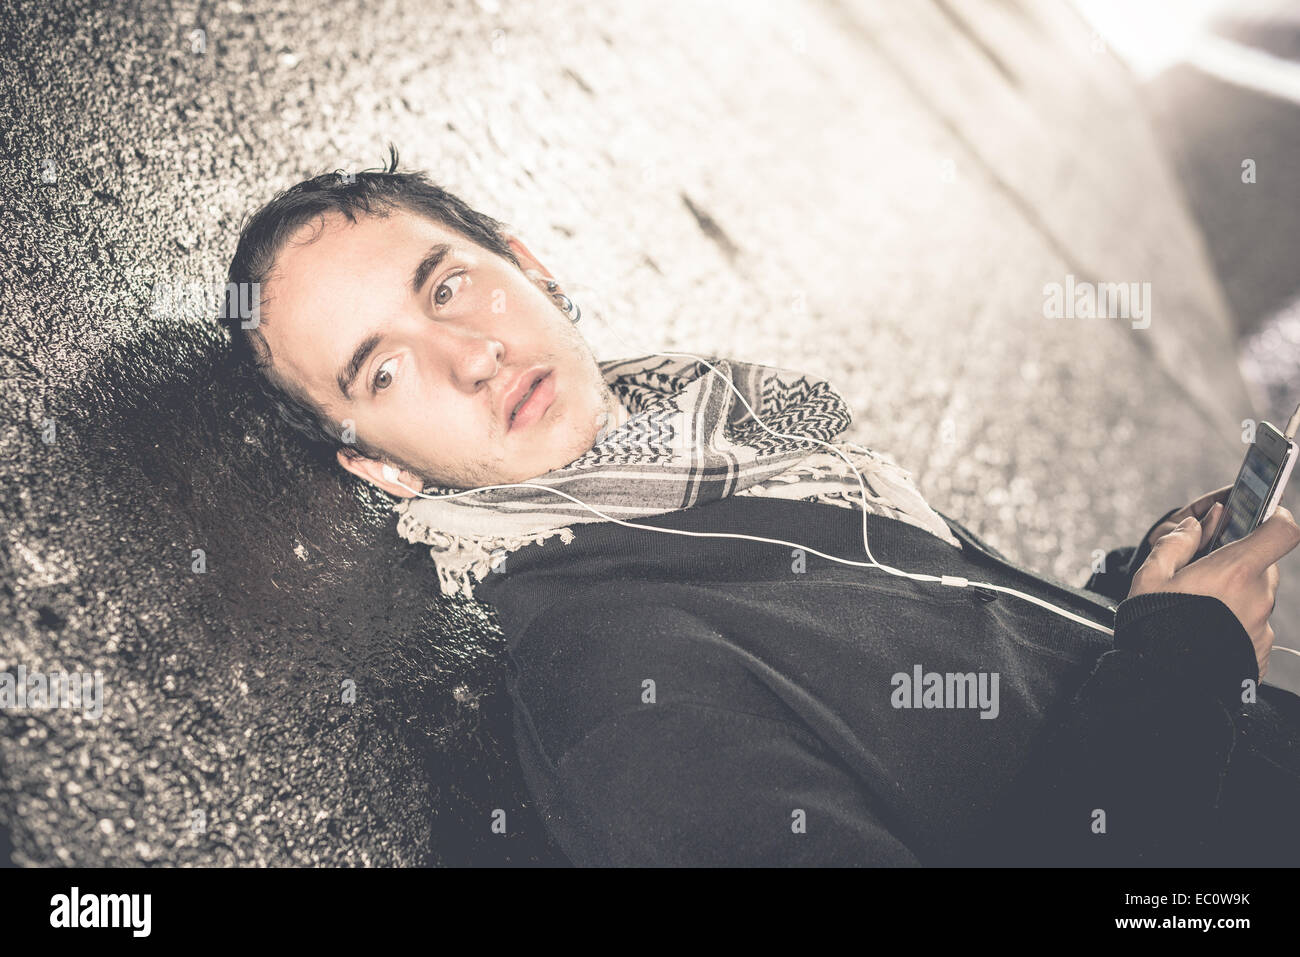 Beautifull boy in the sreet with helmets  music of phone - Stock Image